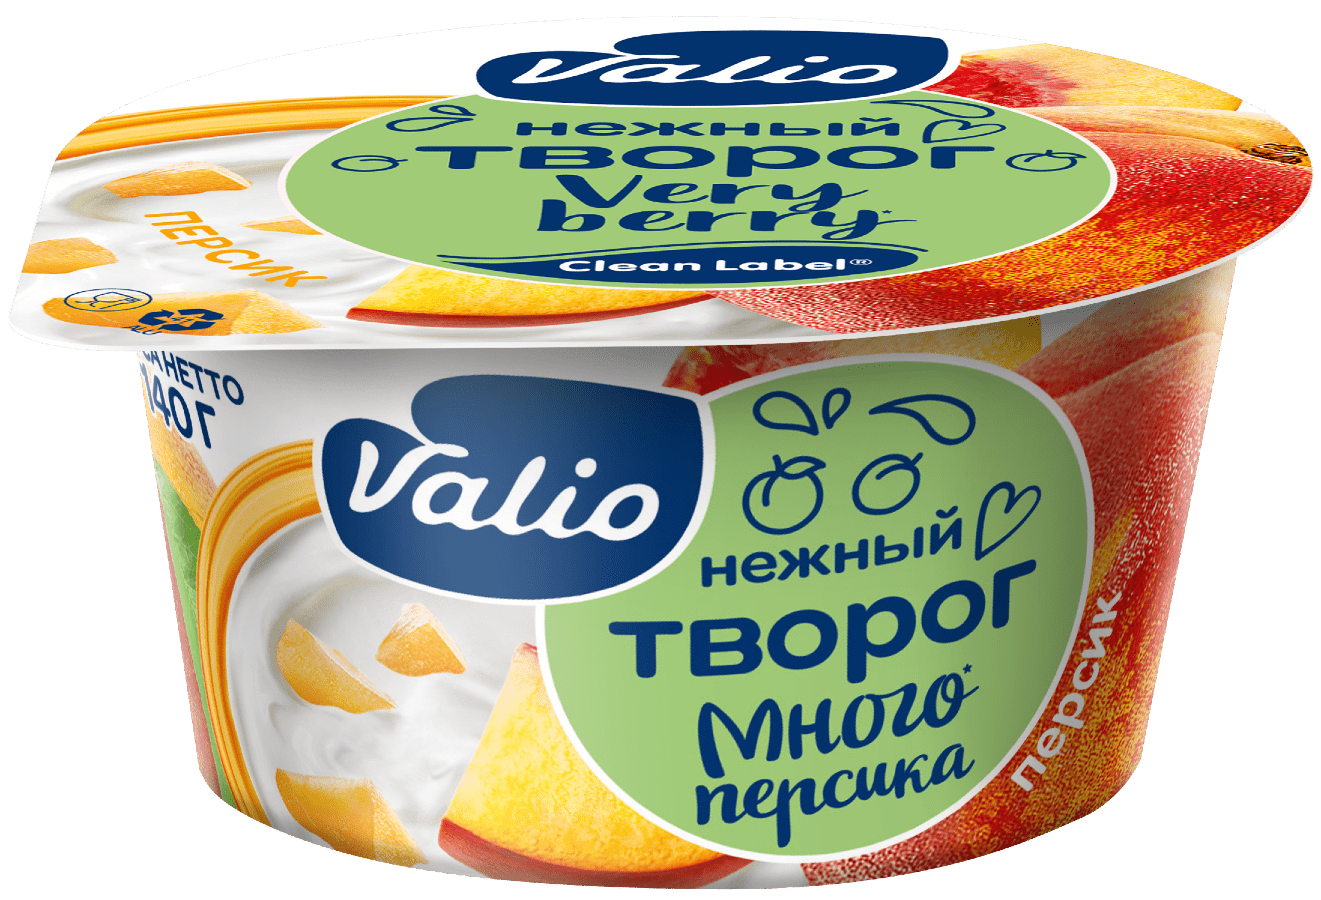 Творог Valio с персиком Clean Label®, 3.5 %, 140 г